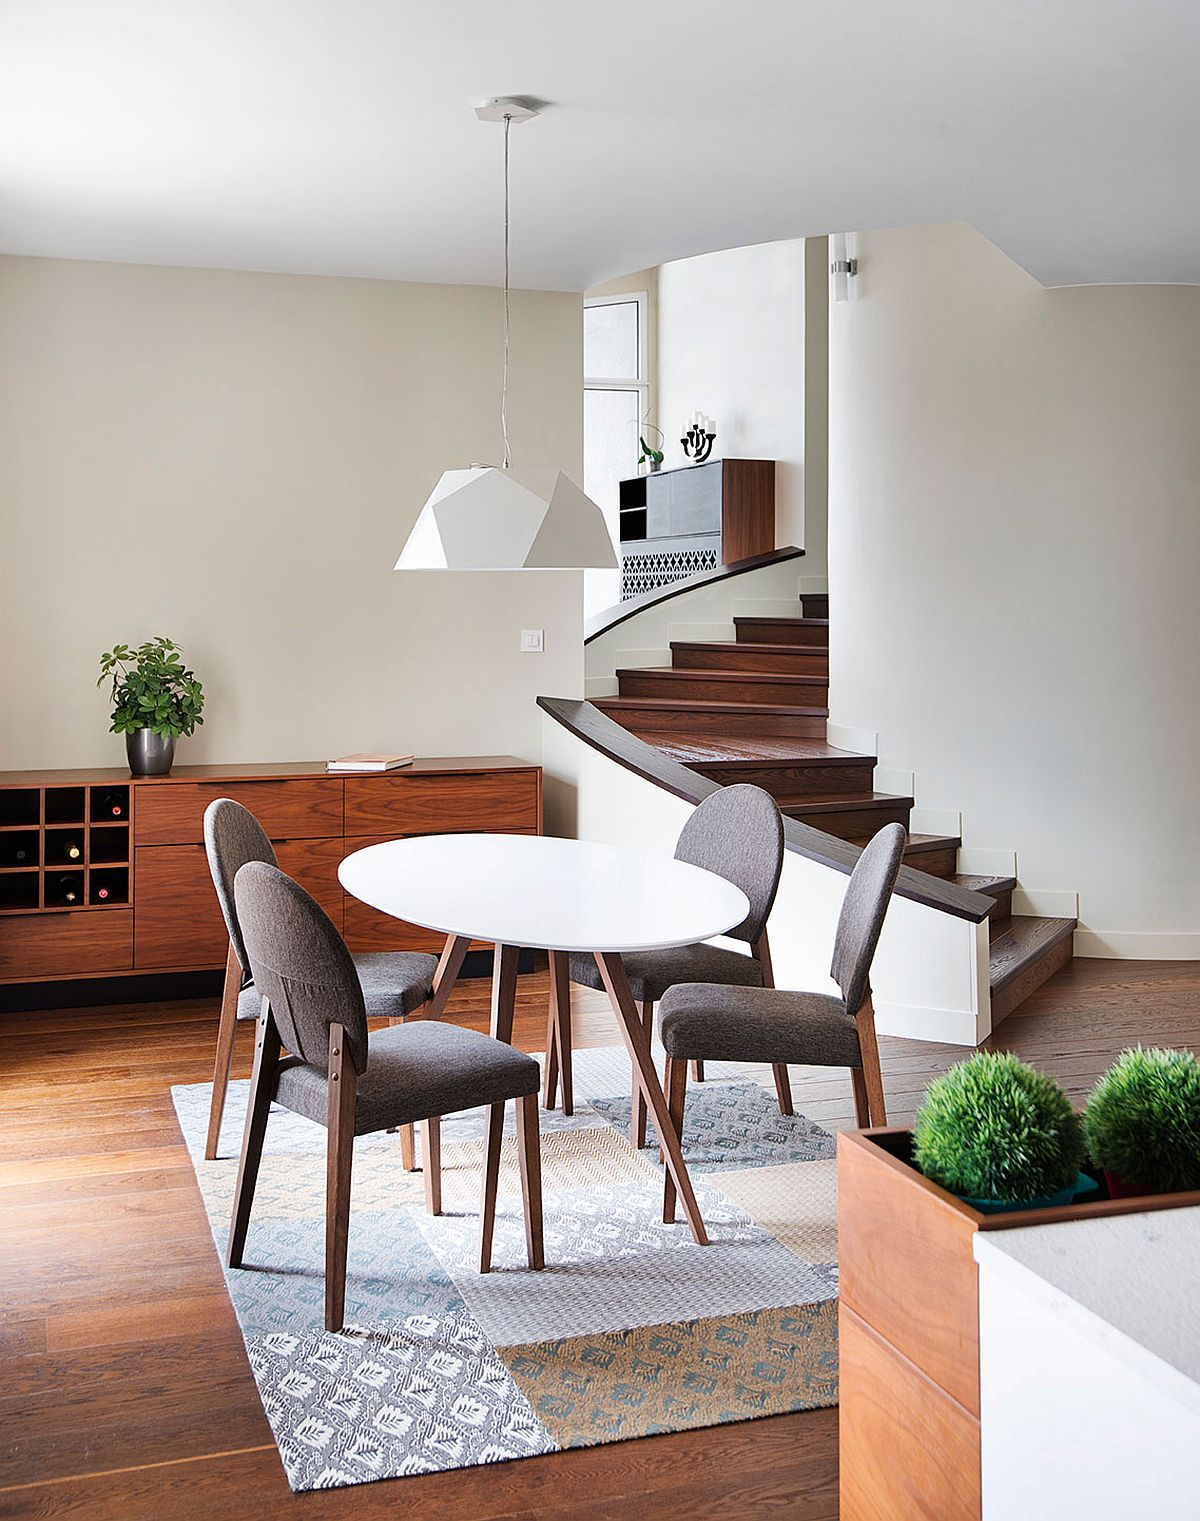 Staircase connects various levels and rooms of the house in a stylish fashion